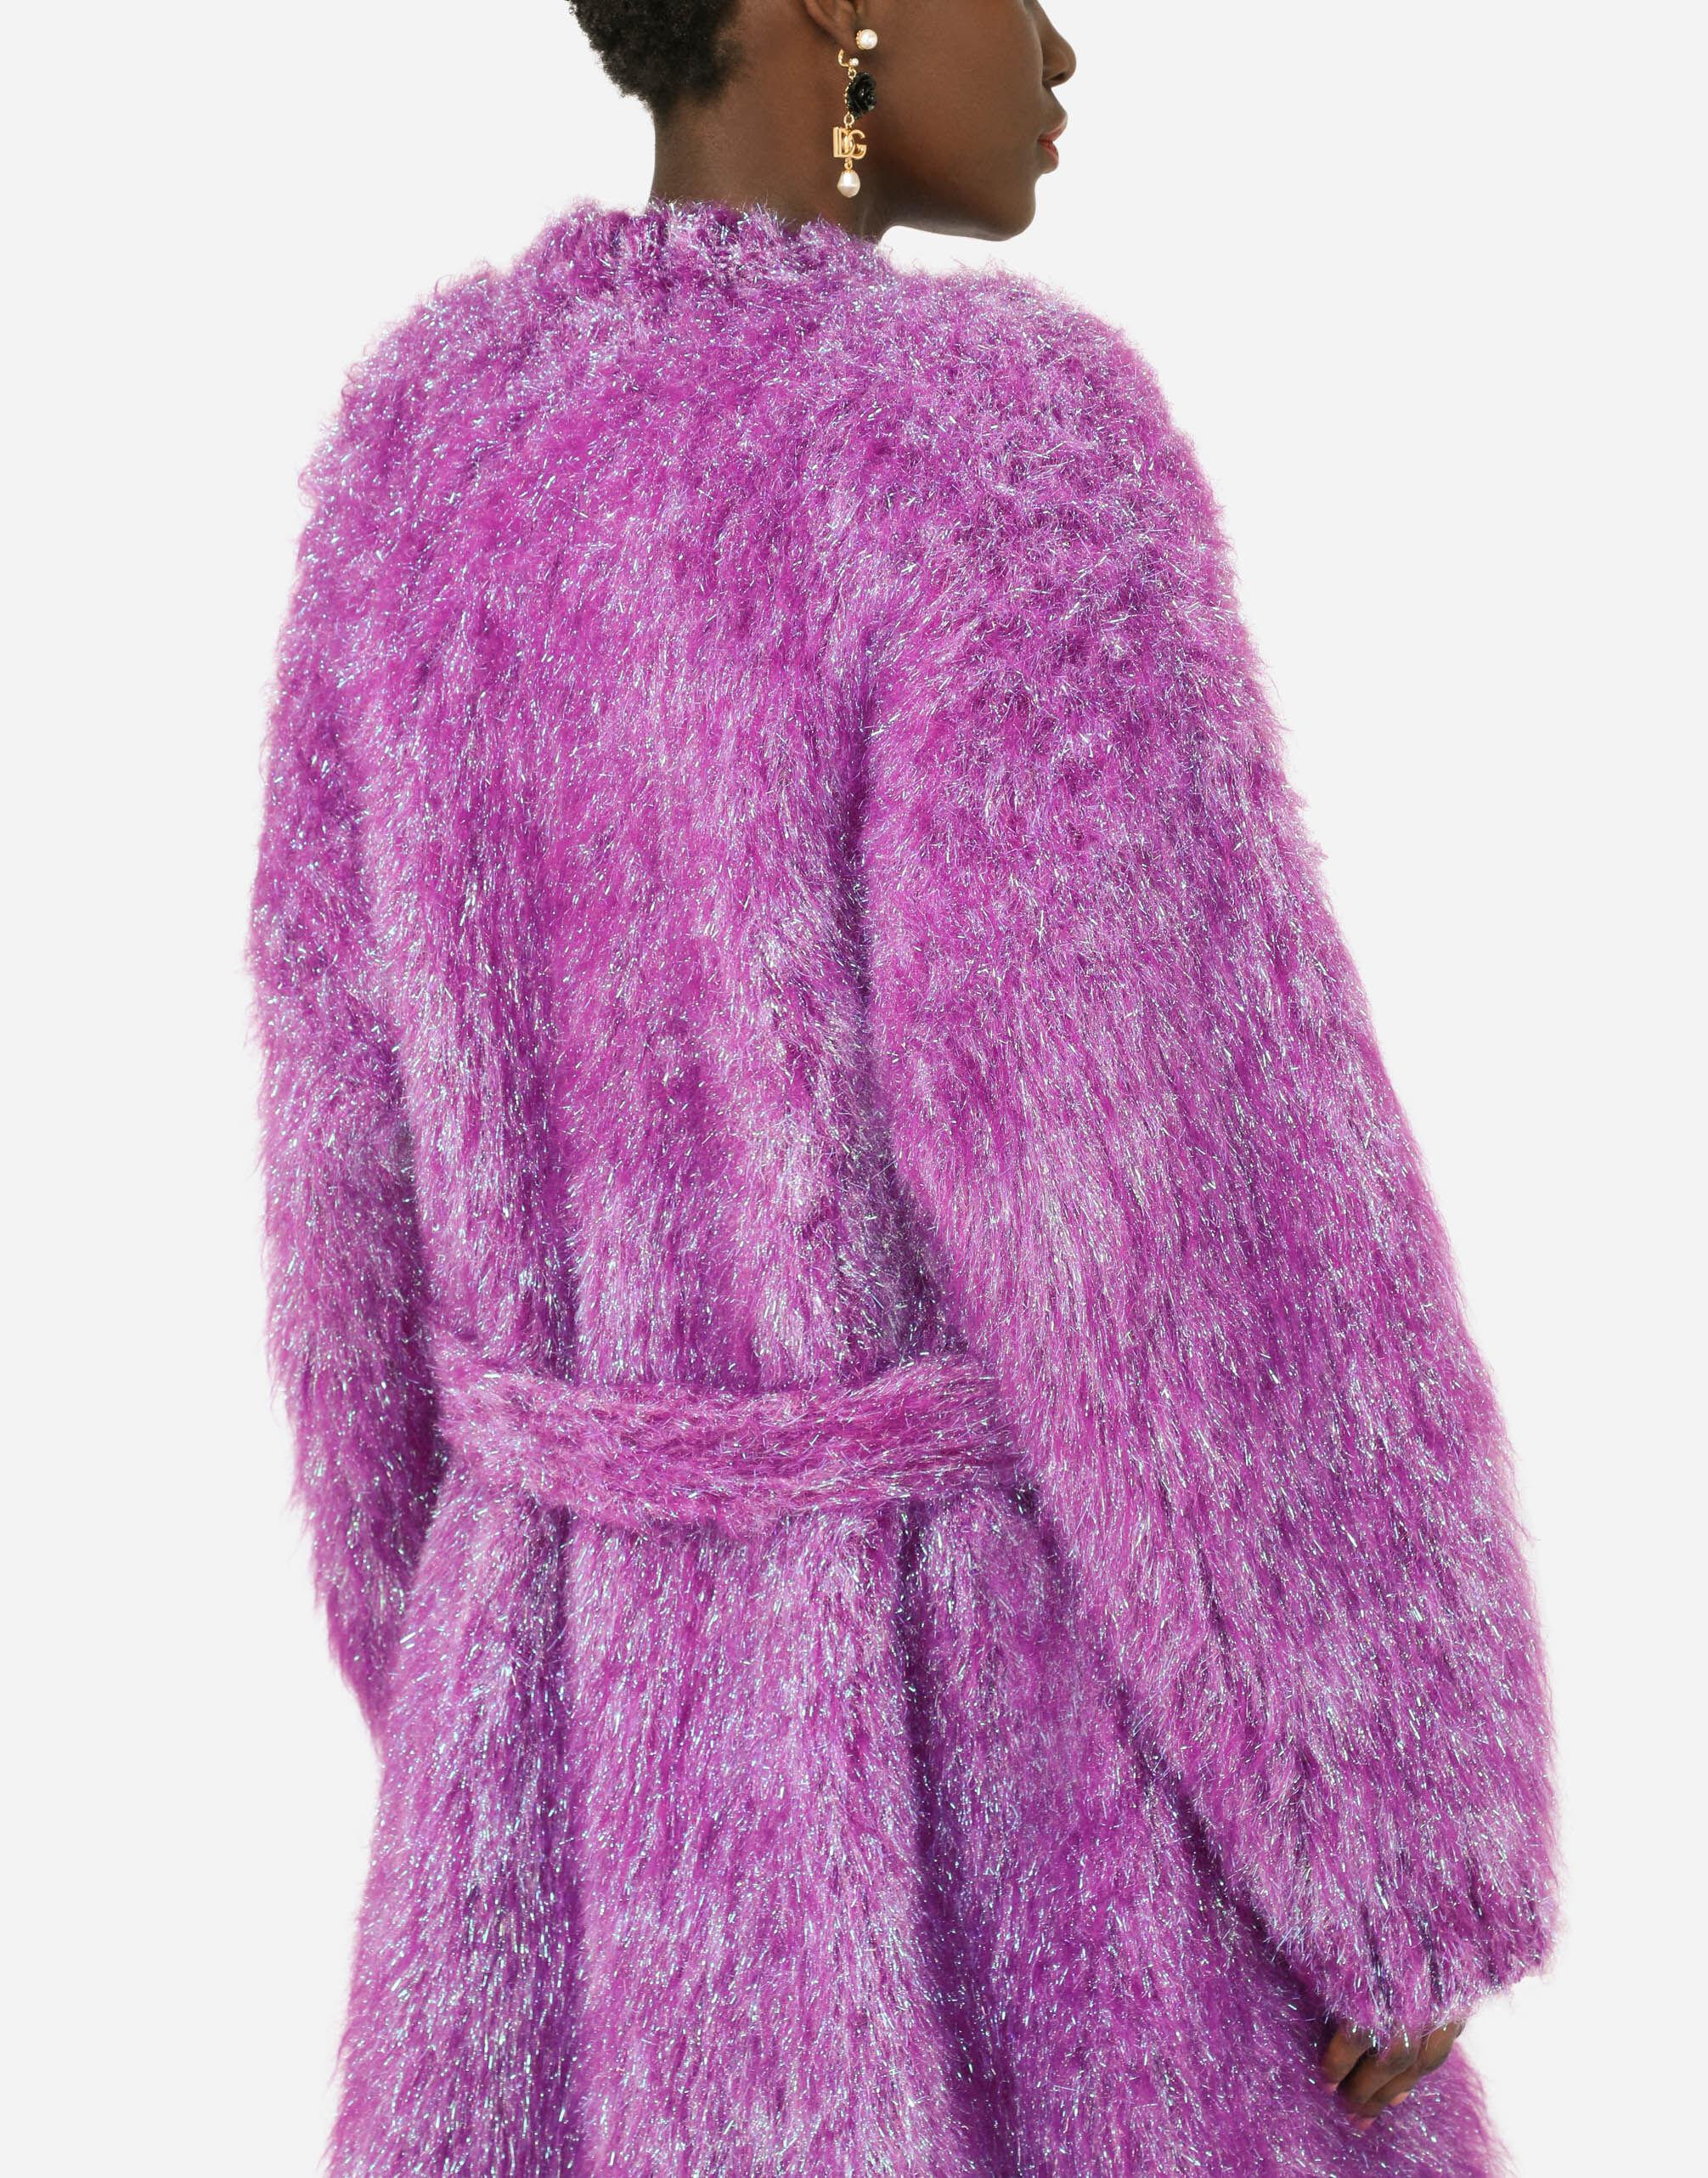 Knit coat with bejeweled buttons 5